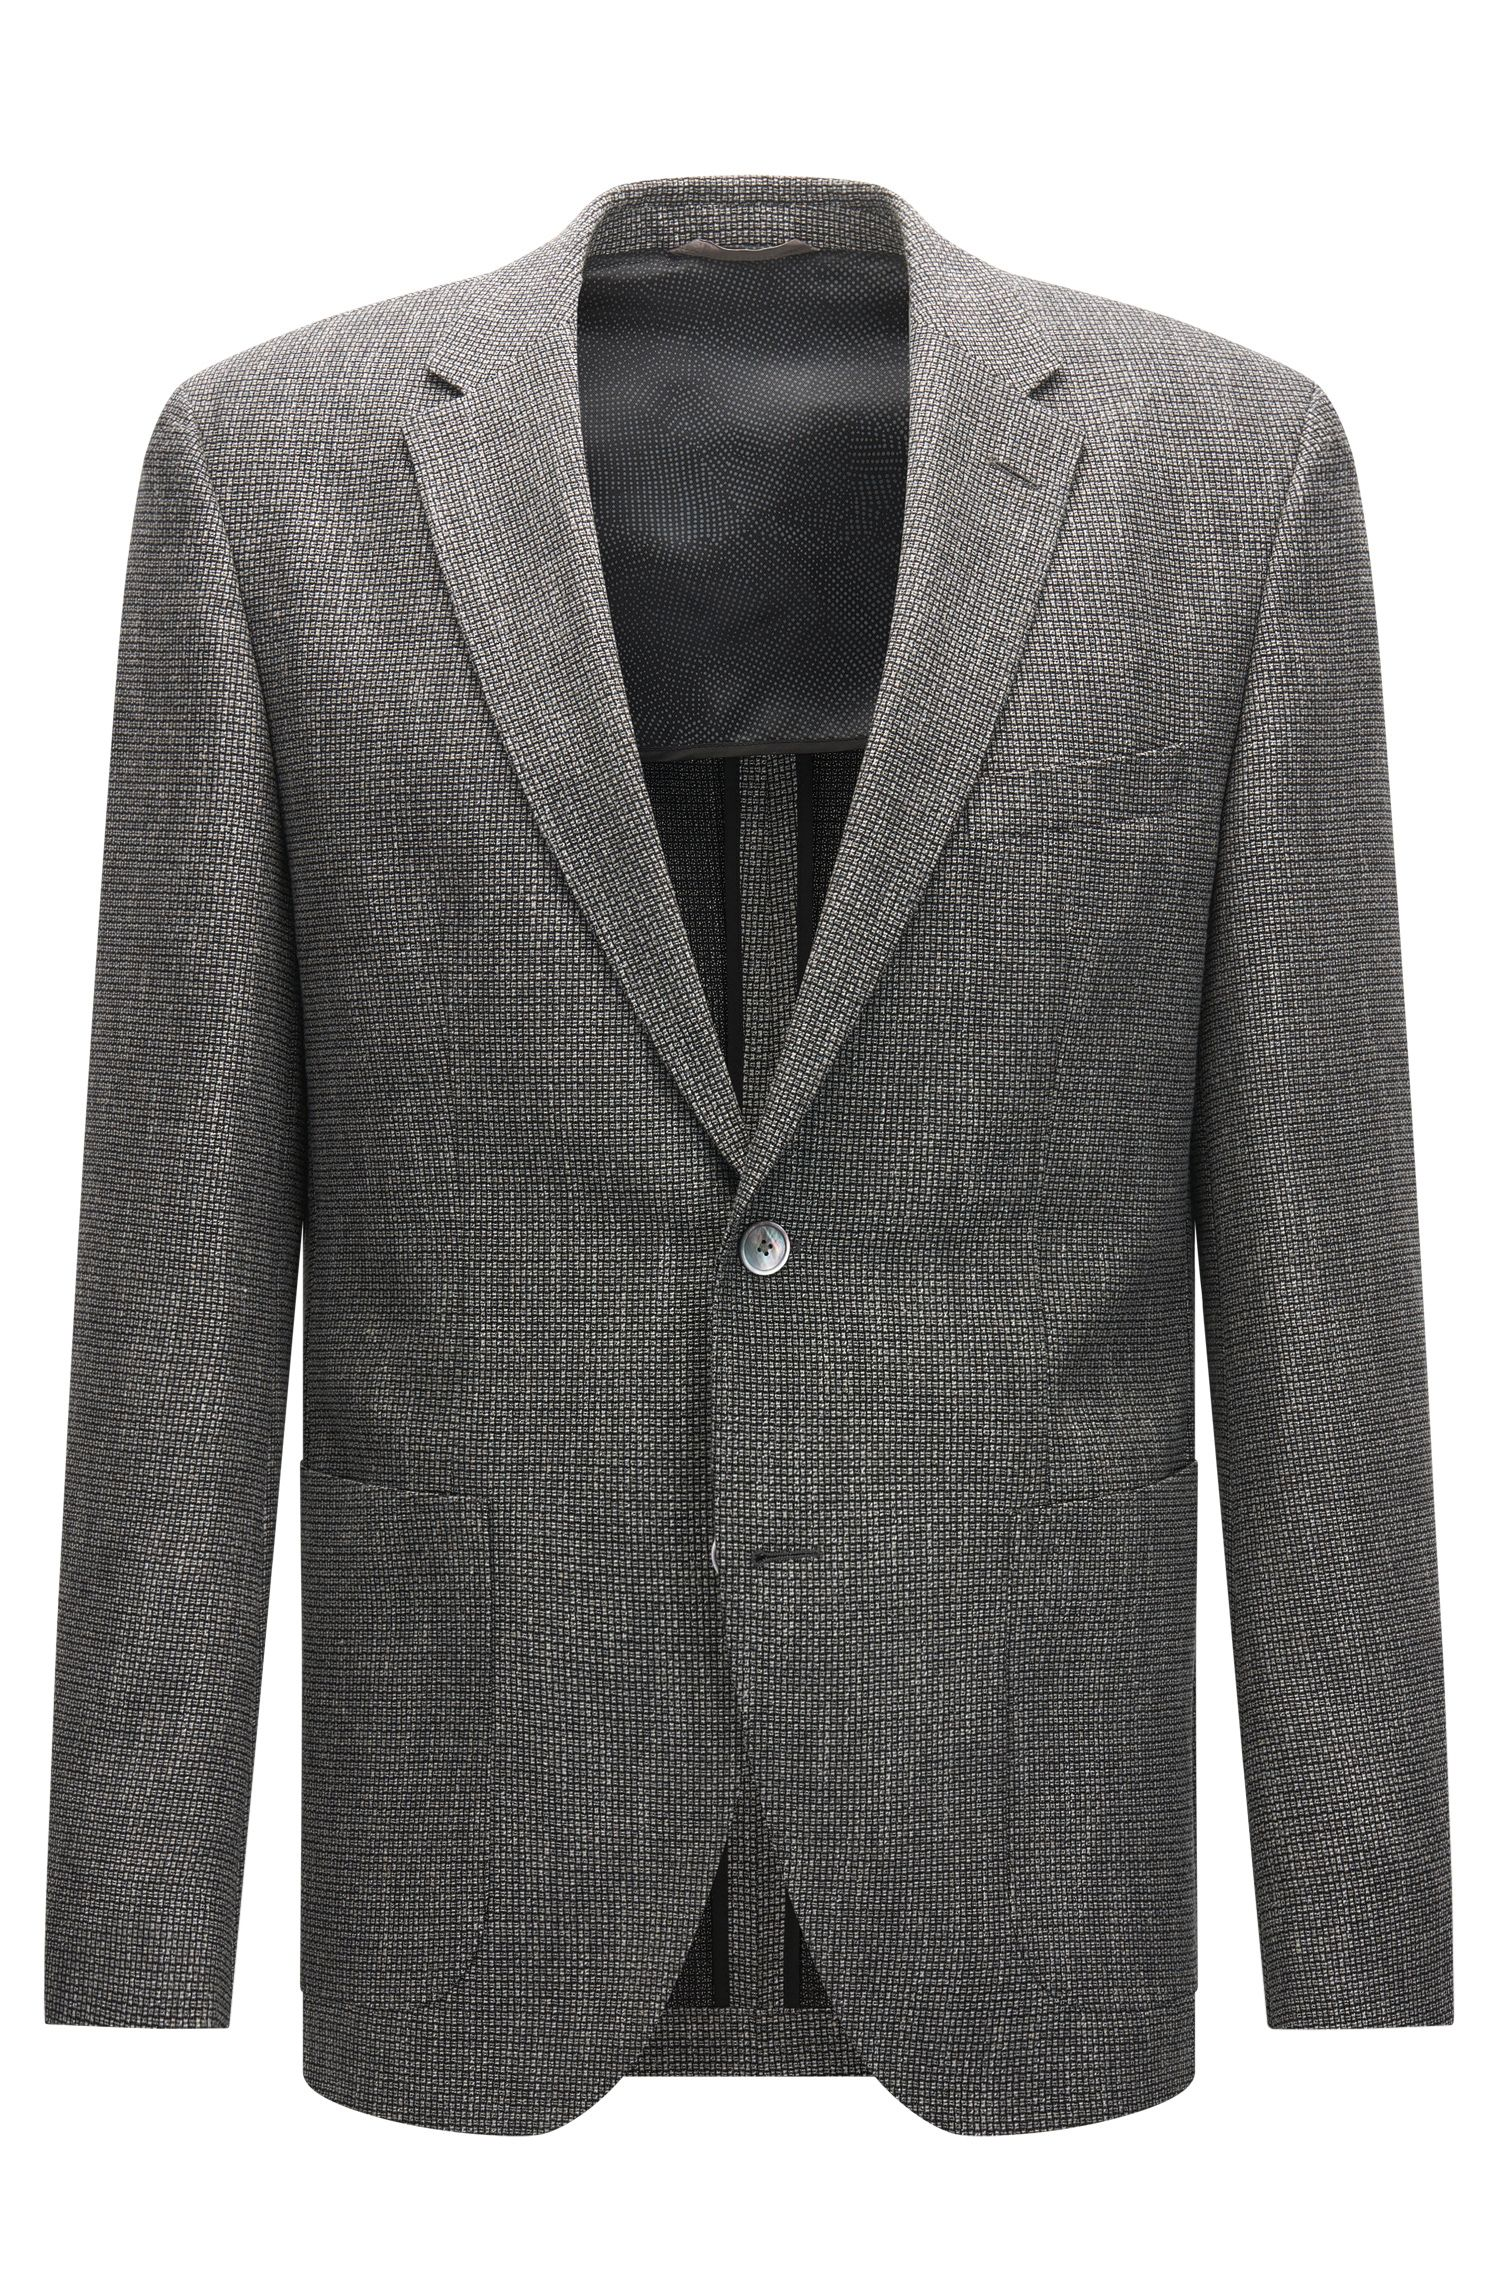 Regular-fit jacket in a two-tone woven structure